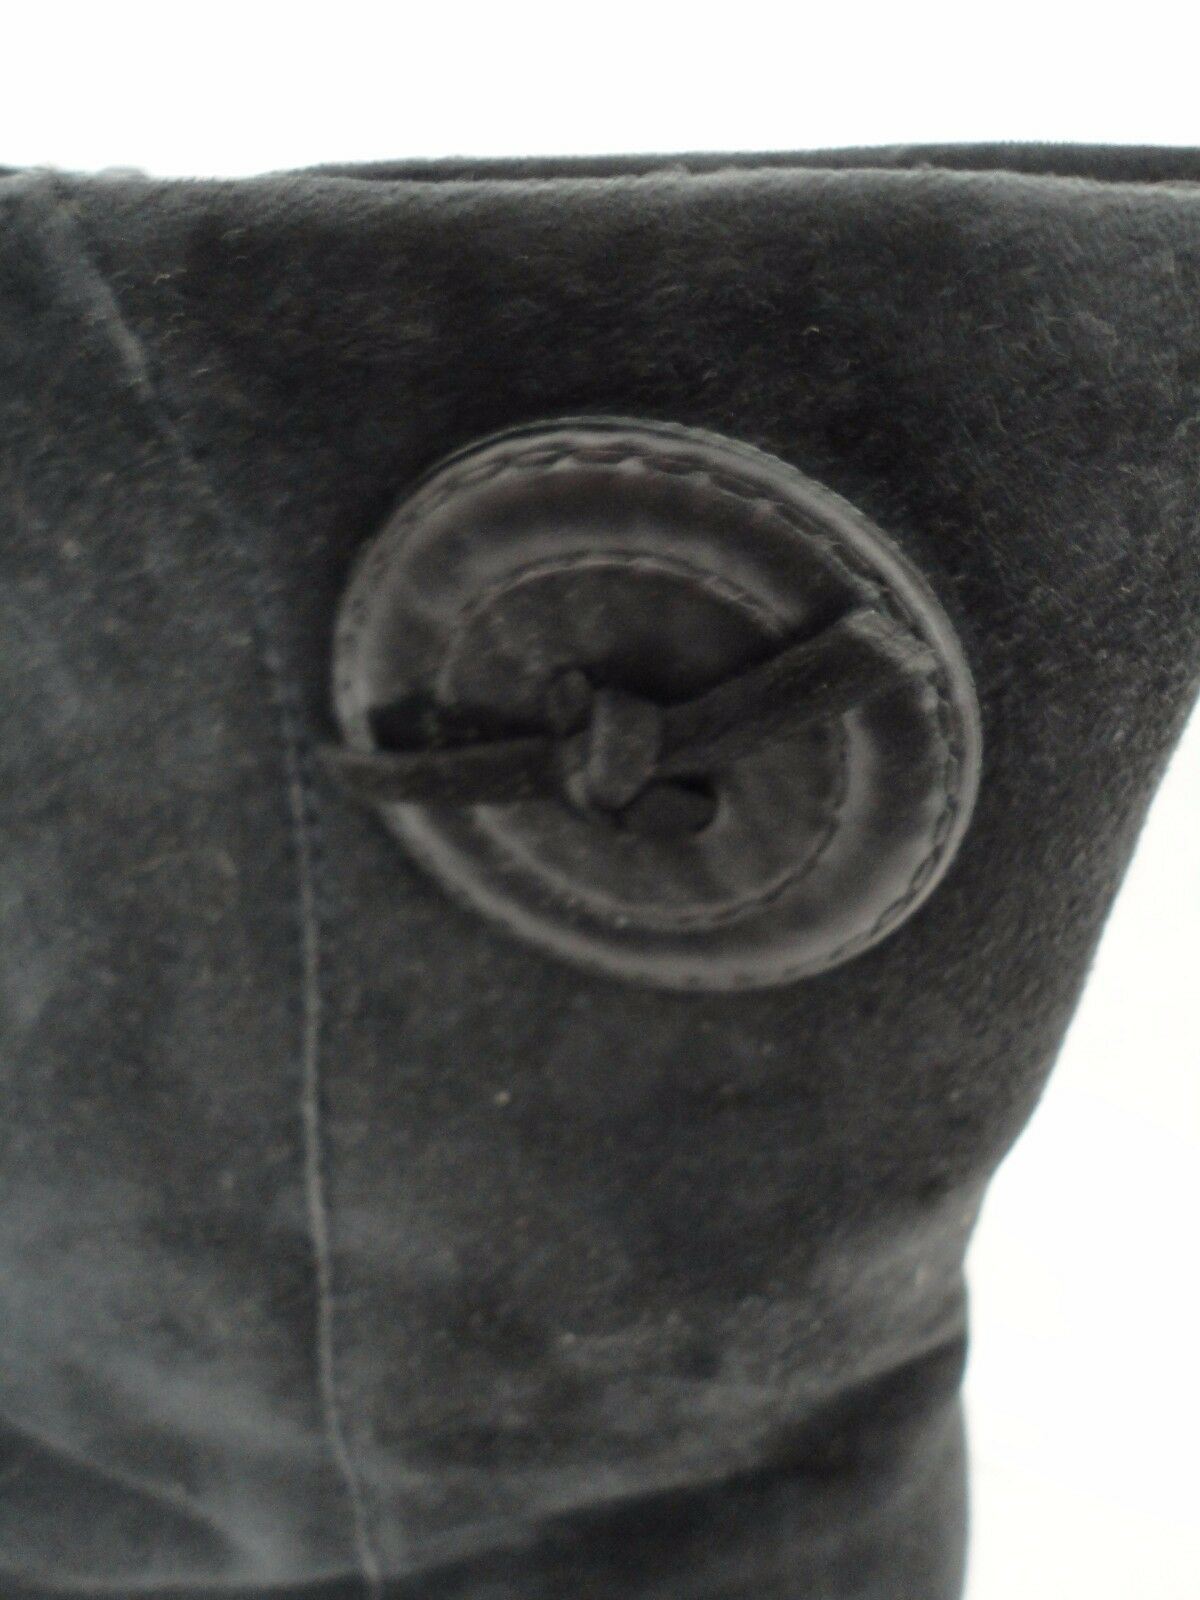 LADIES BLACK LEATHER & SUEDE ANKLE BOOT BOOT ANKLE BY PETER KAISER SIZE 38,5 UK 5.5 US 7.5 70940d